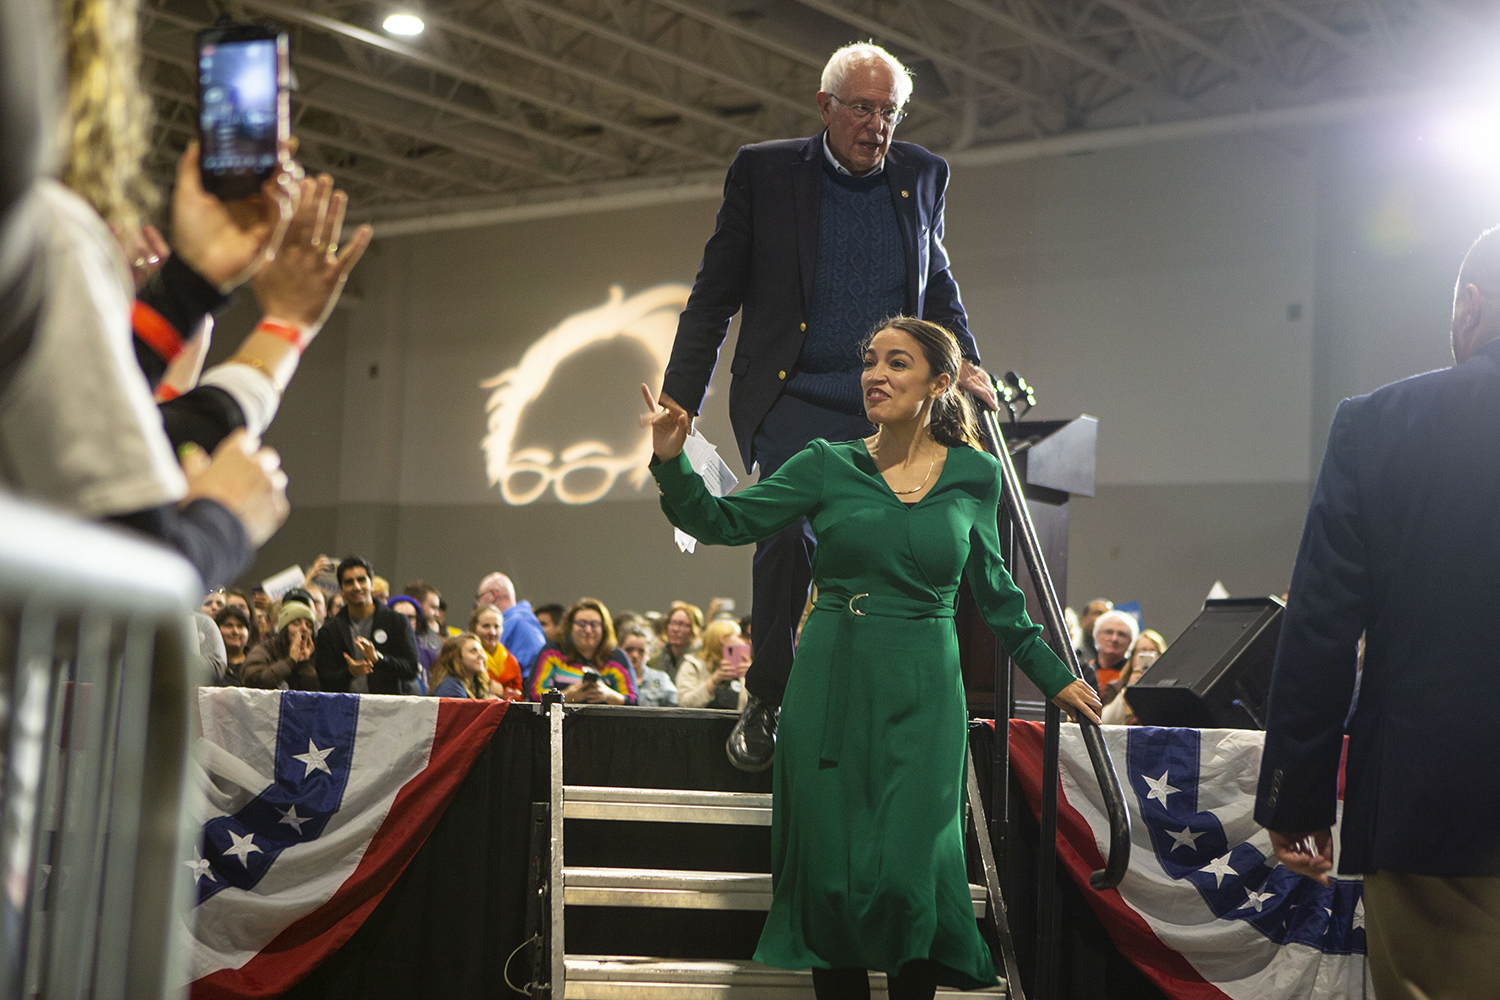 Sen. Bernie Sanders, I-Vt, and Rep. Alexandria Ocasio-Cortez, D-N.Y, exit the stage after a rally at the Coralville Marriott Hotel and Conference Center on Saturday, Nov. 9, 2019. Sen. Sanders and Rep. Osasio-Cortez spoke on climate change and women's rights.